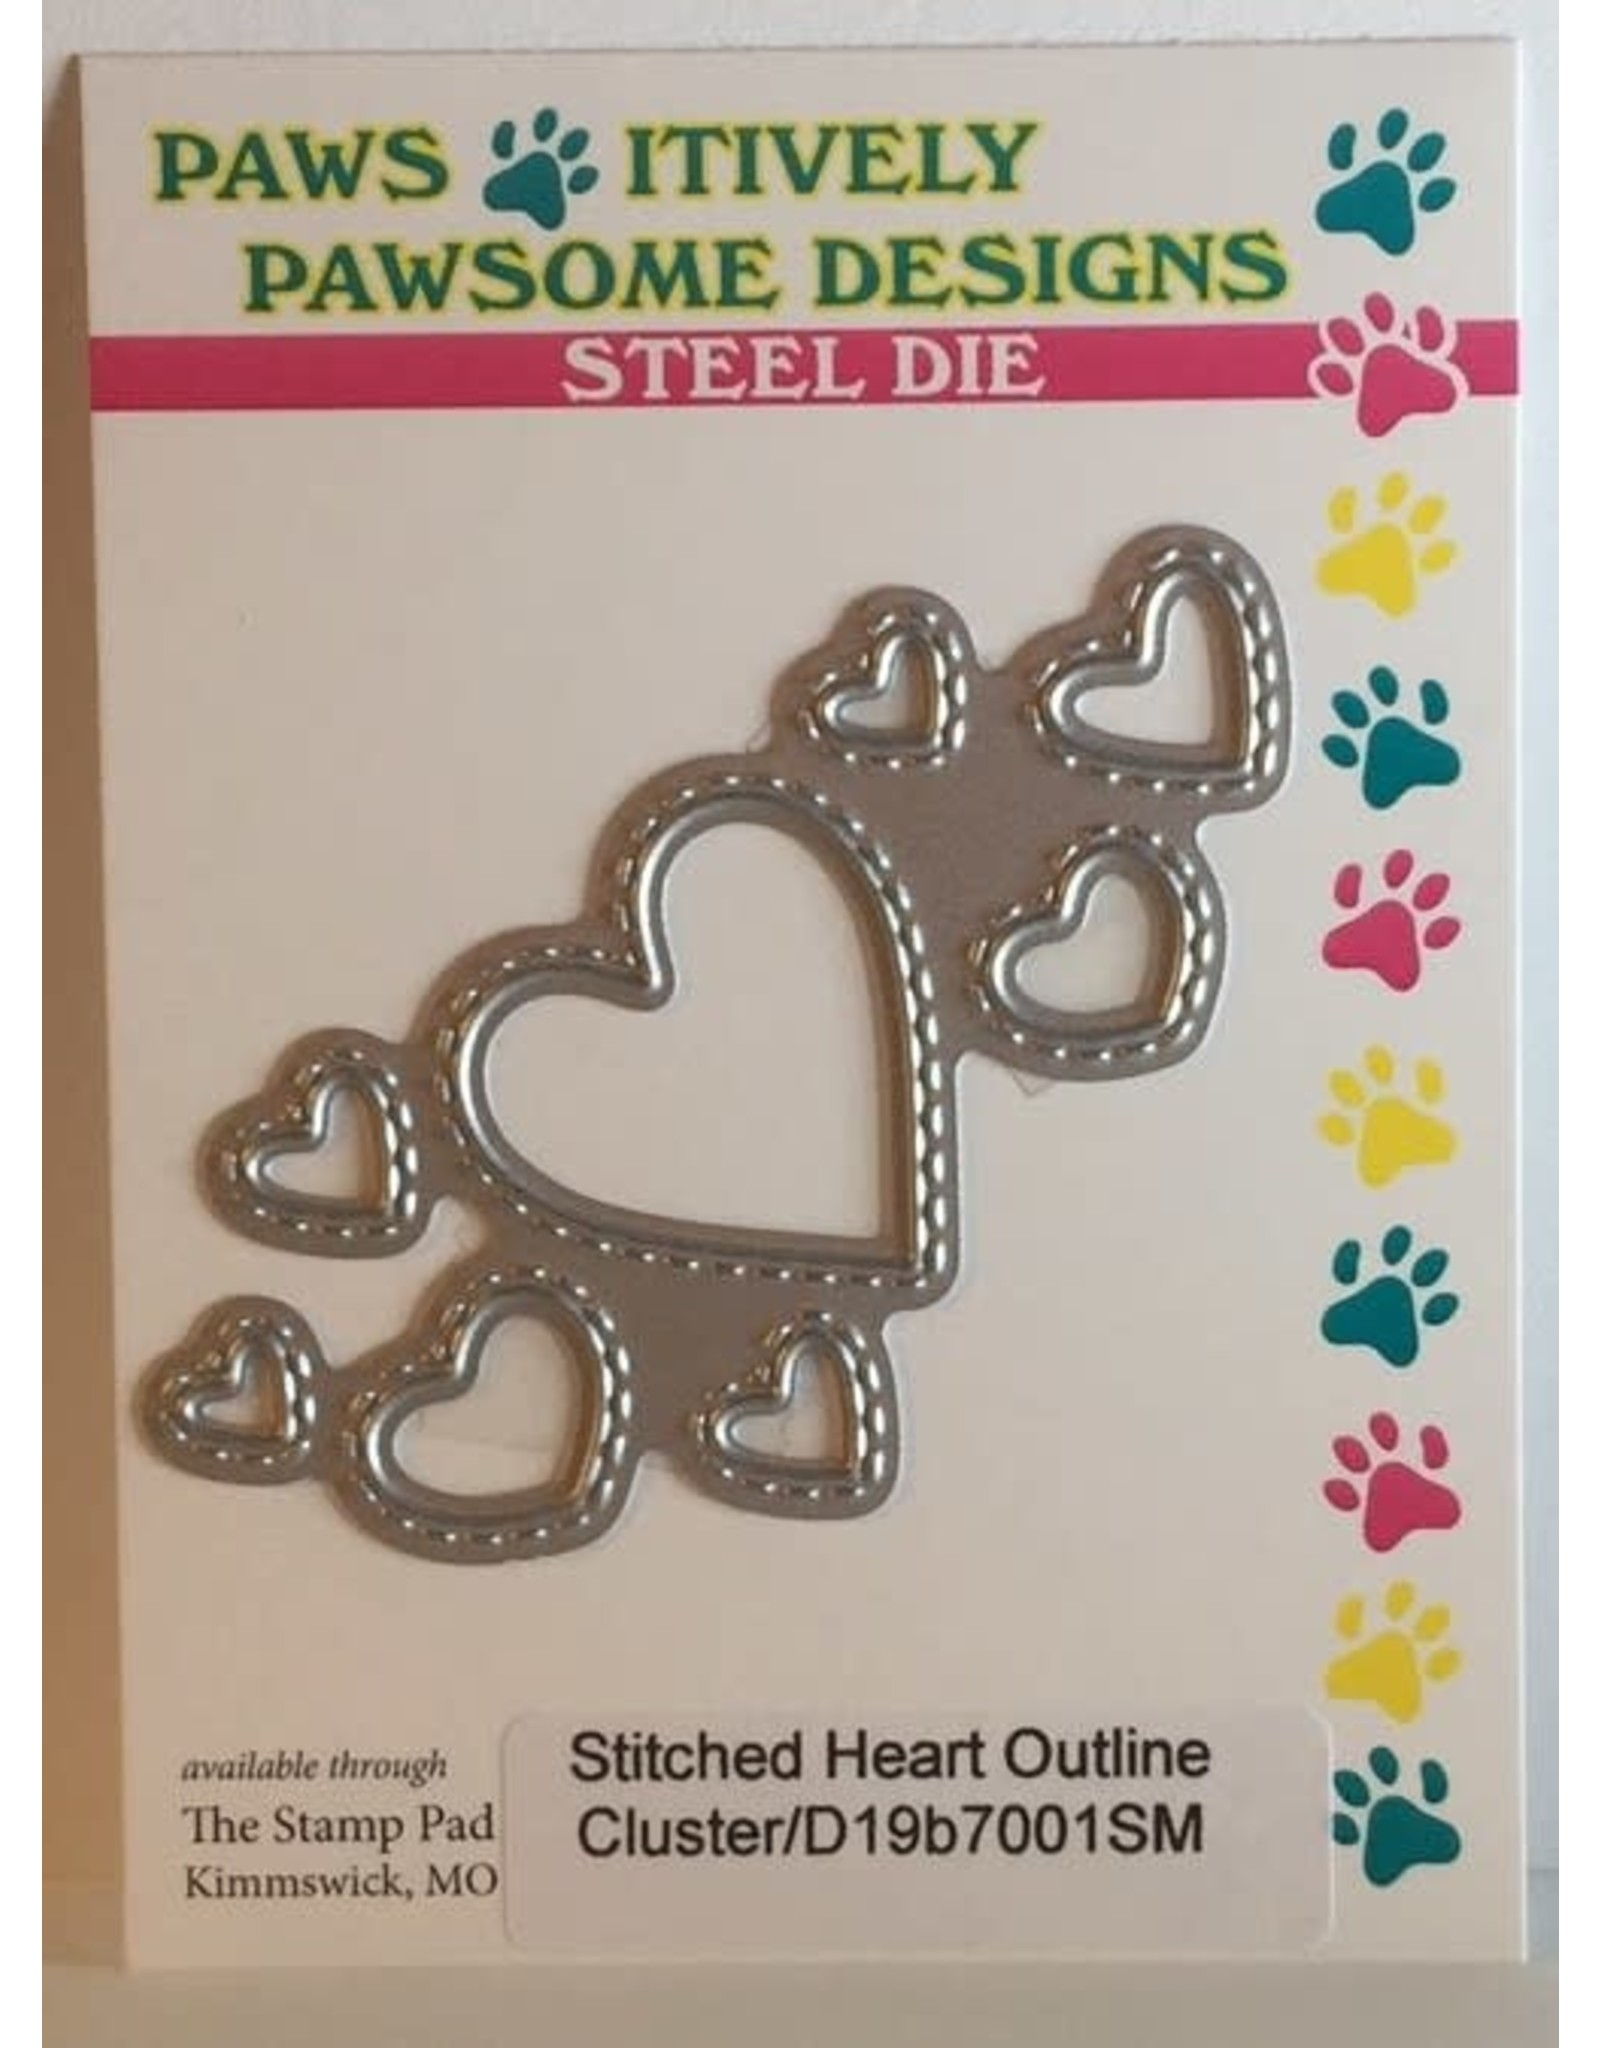 Paws-Itively Pawsome Designs Stitched Heart Outline Cluster - Die